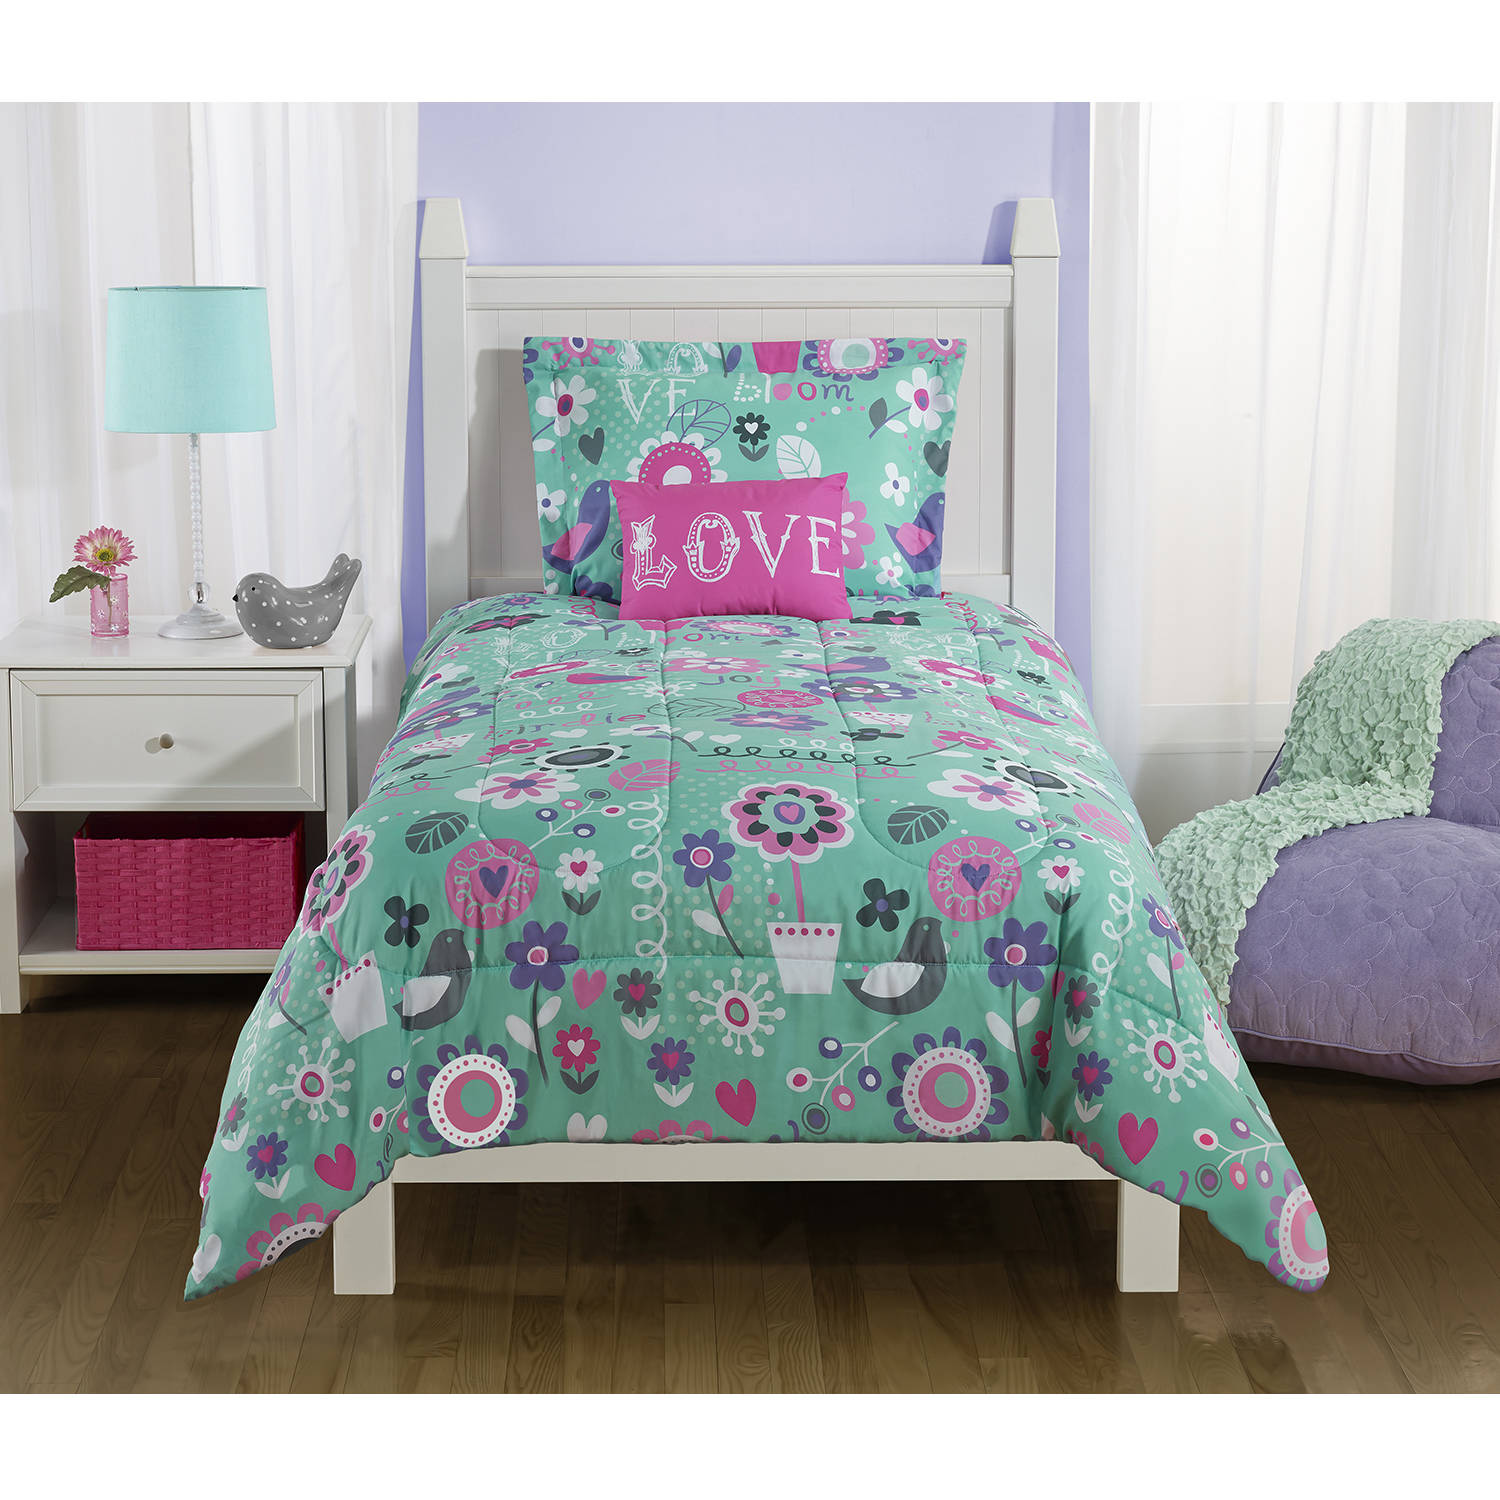 Mainstays Kids Spring Birds Bedding Comforter Set